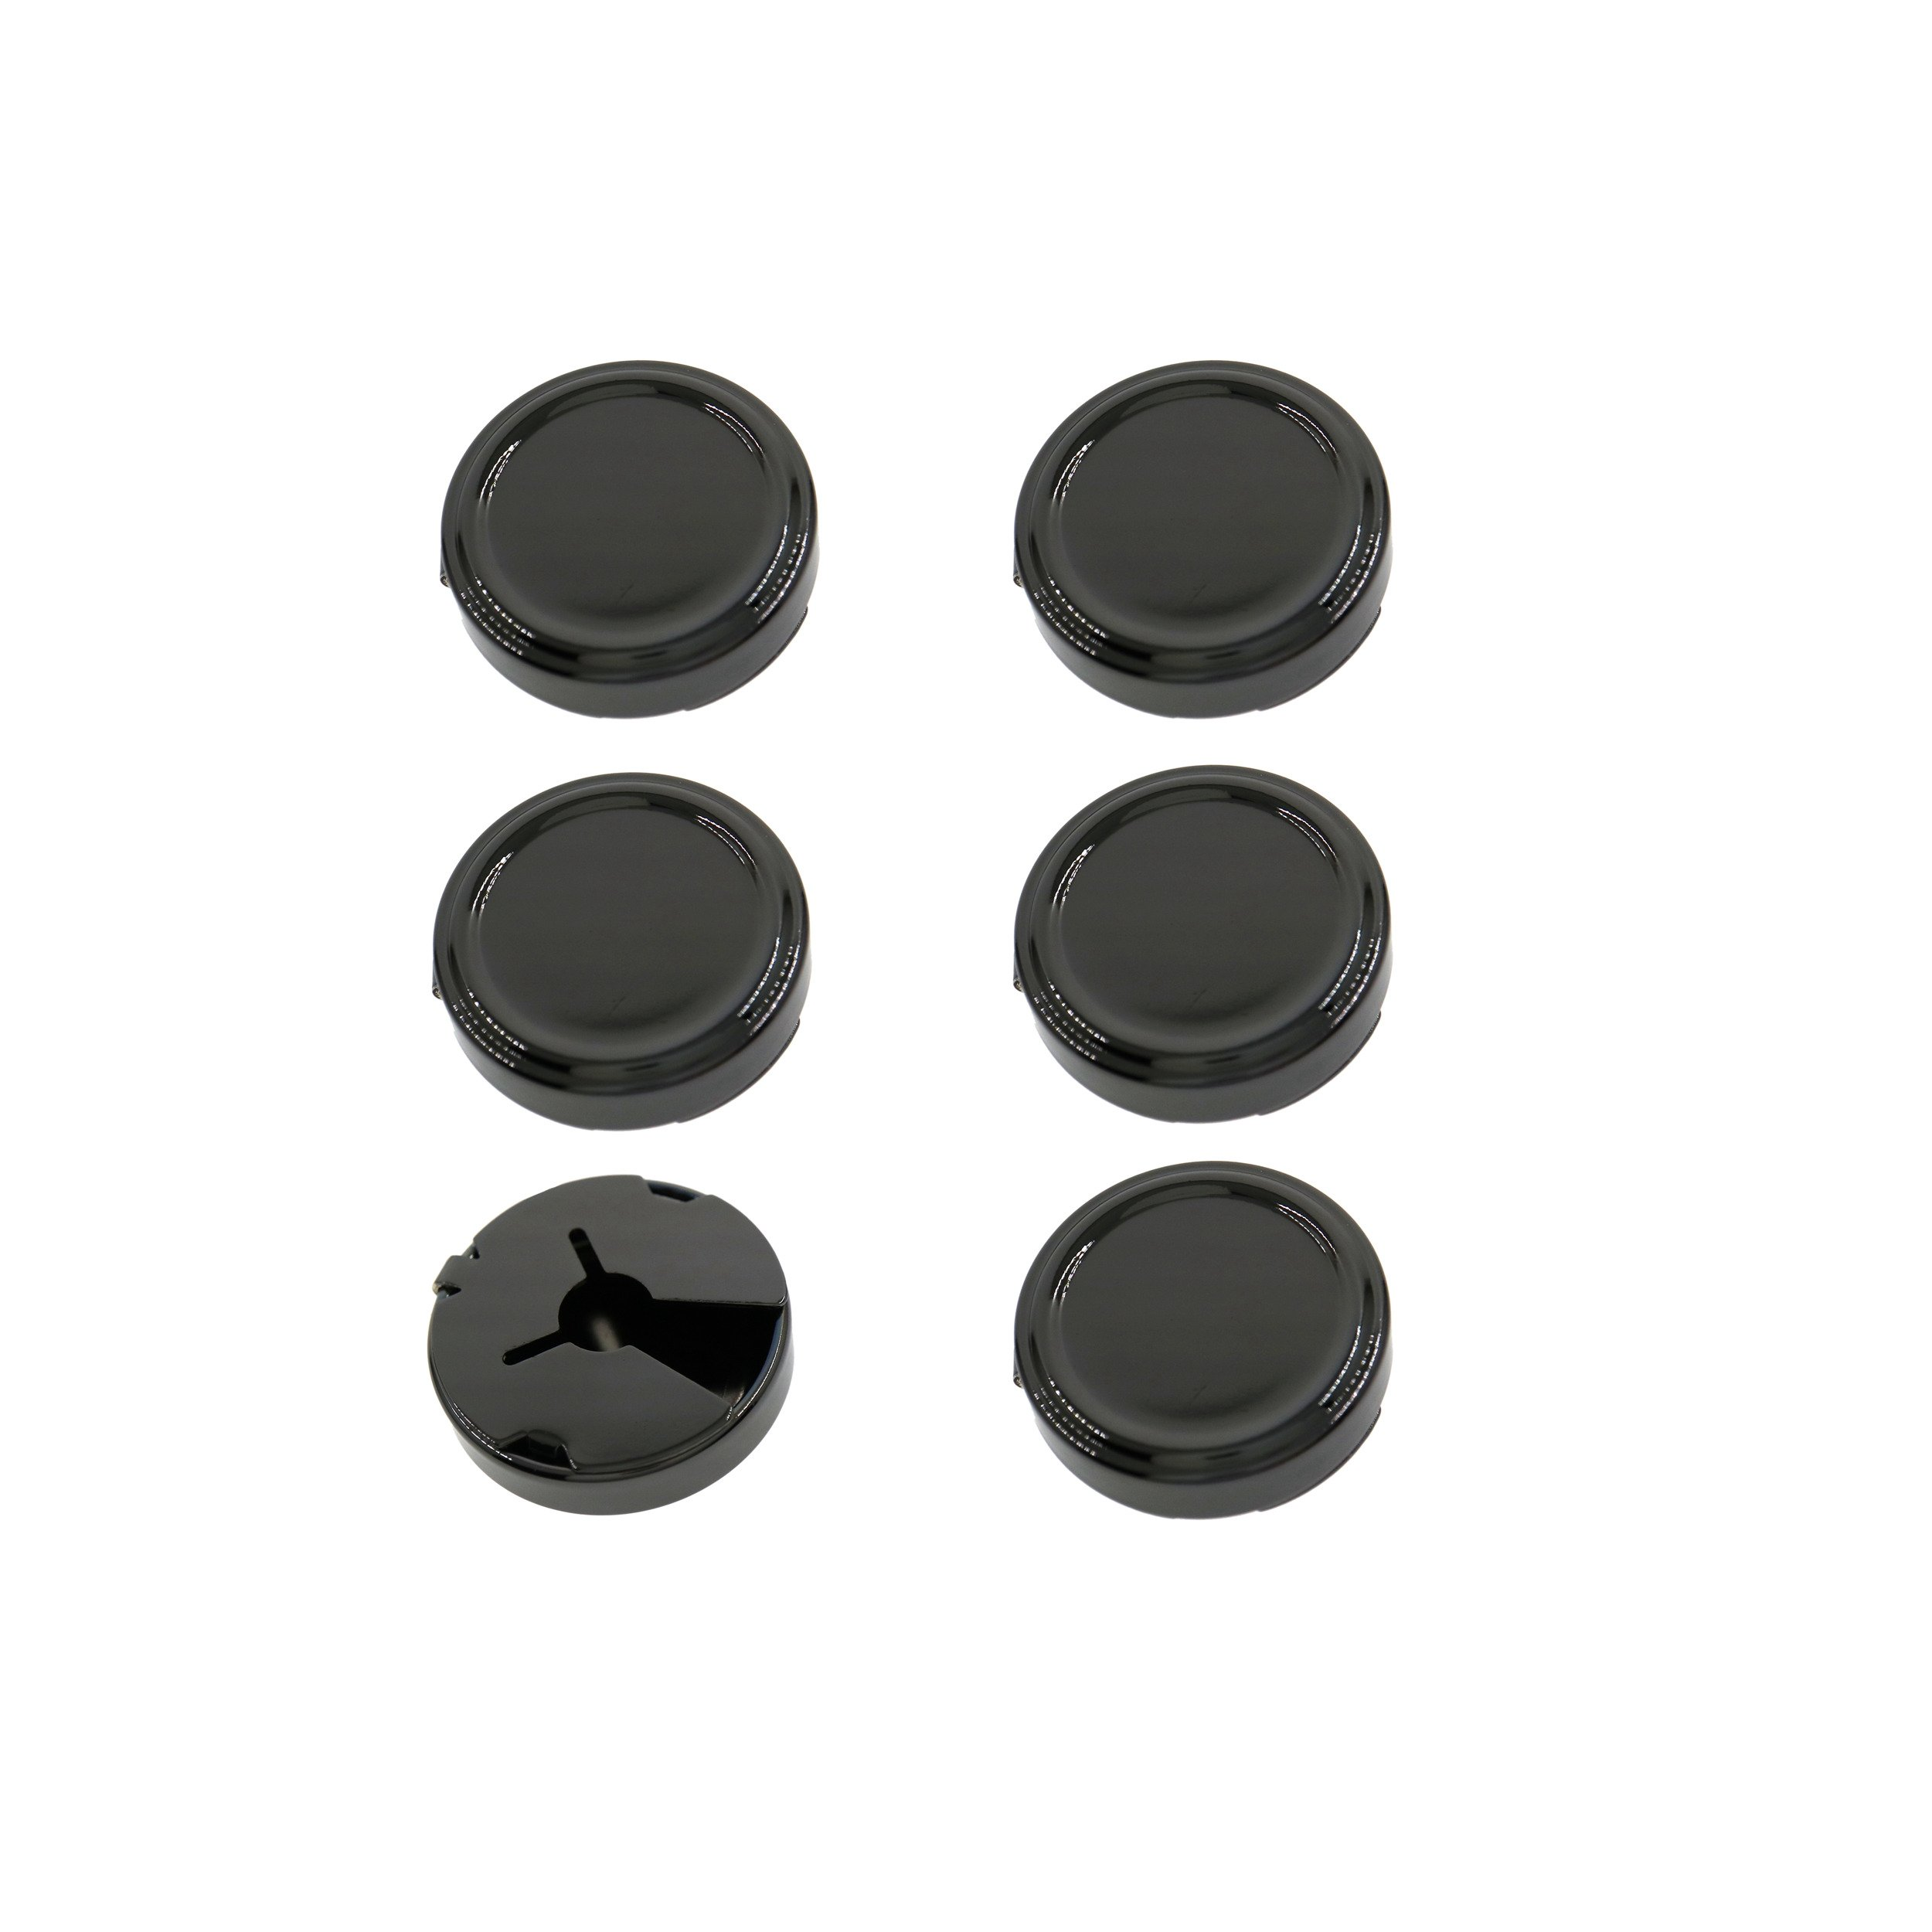 Ms.Iconic 25MM Big Gun Black Round Cuff Button Cover Cuff Links for Wedding Formal Shirt 6 Pcs/Set (Gun Black)